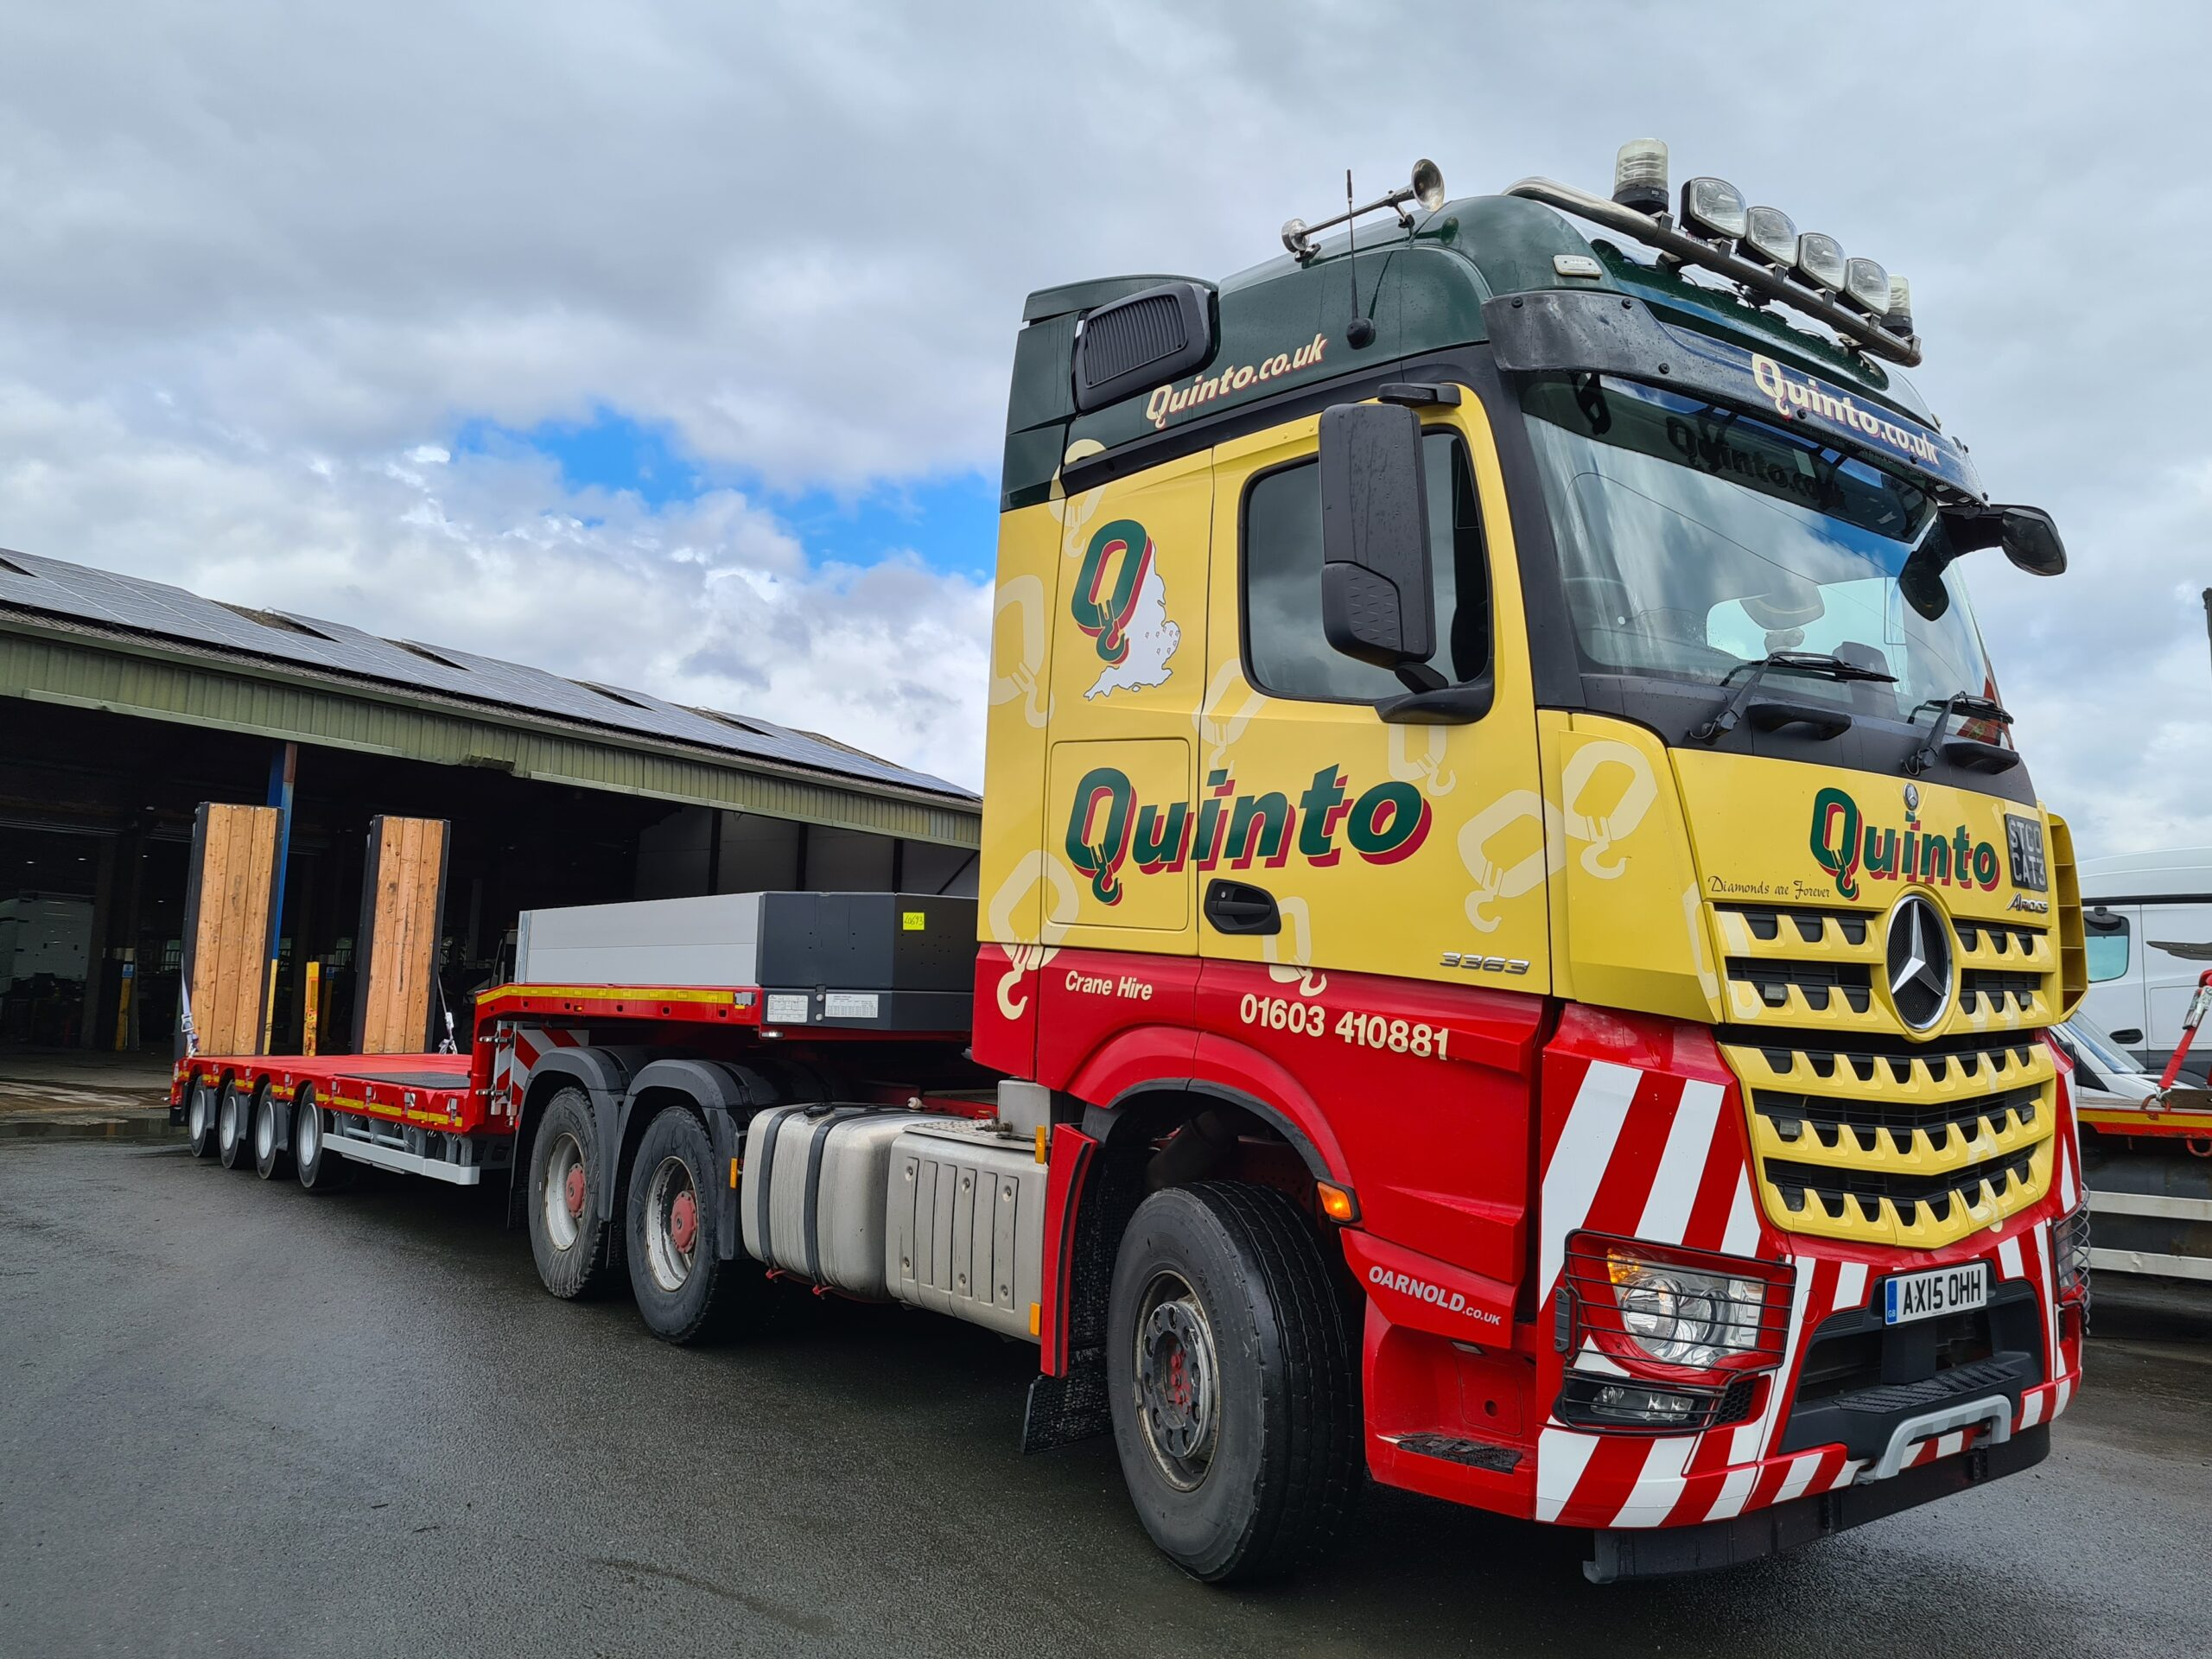 Specialist Trailer Hire (STH) delivers first »STEPSTAR« Trailer from Goldhofer